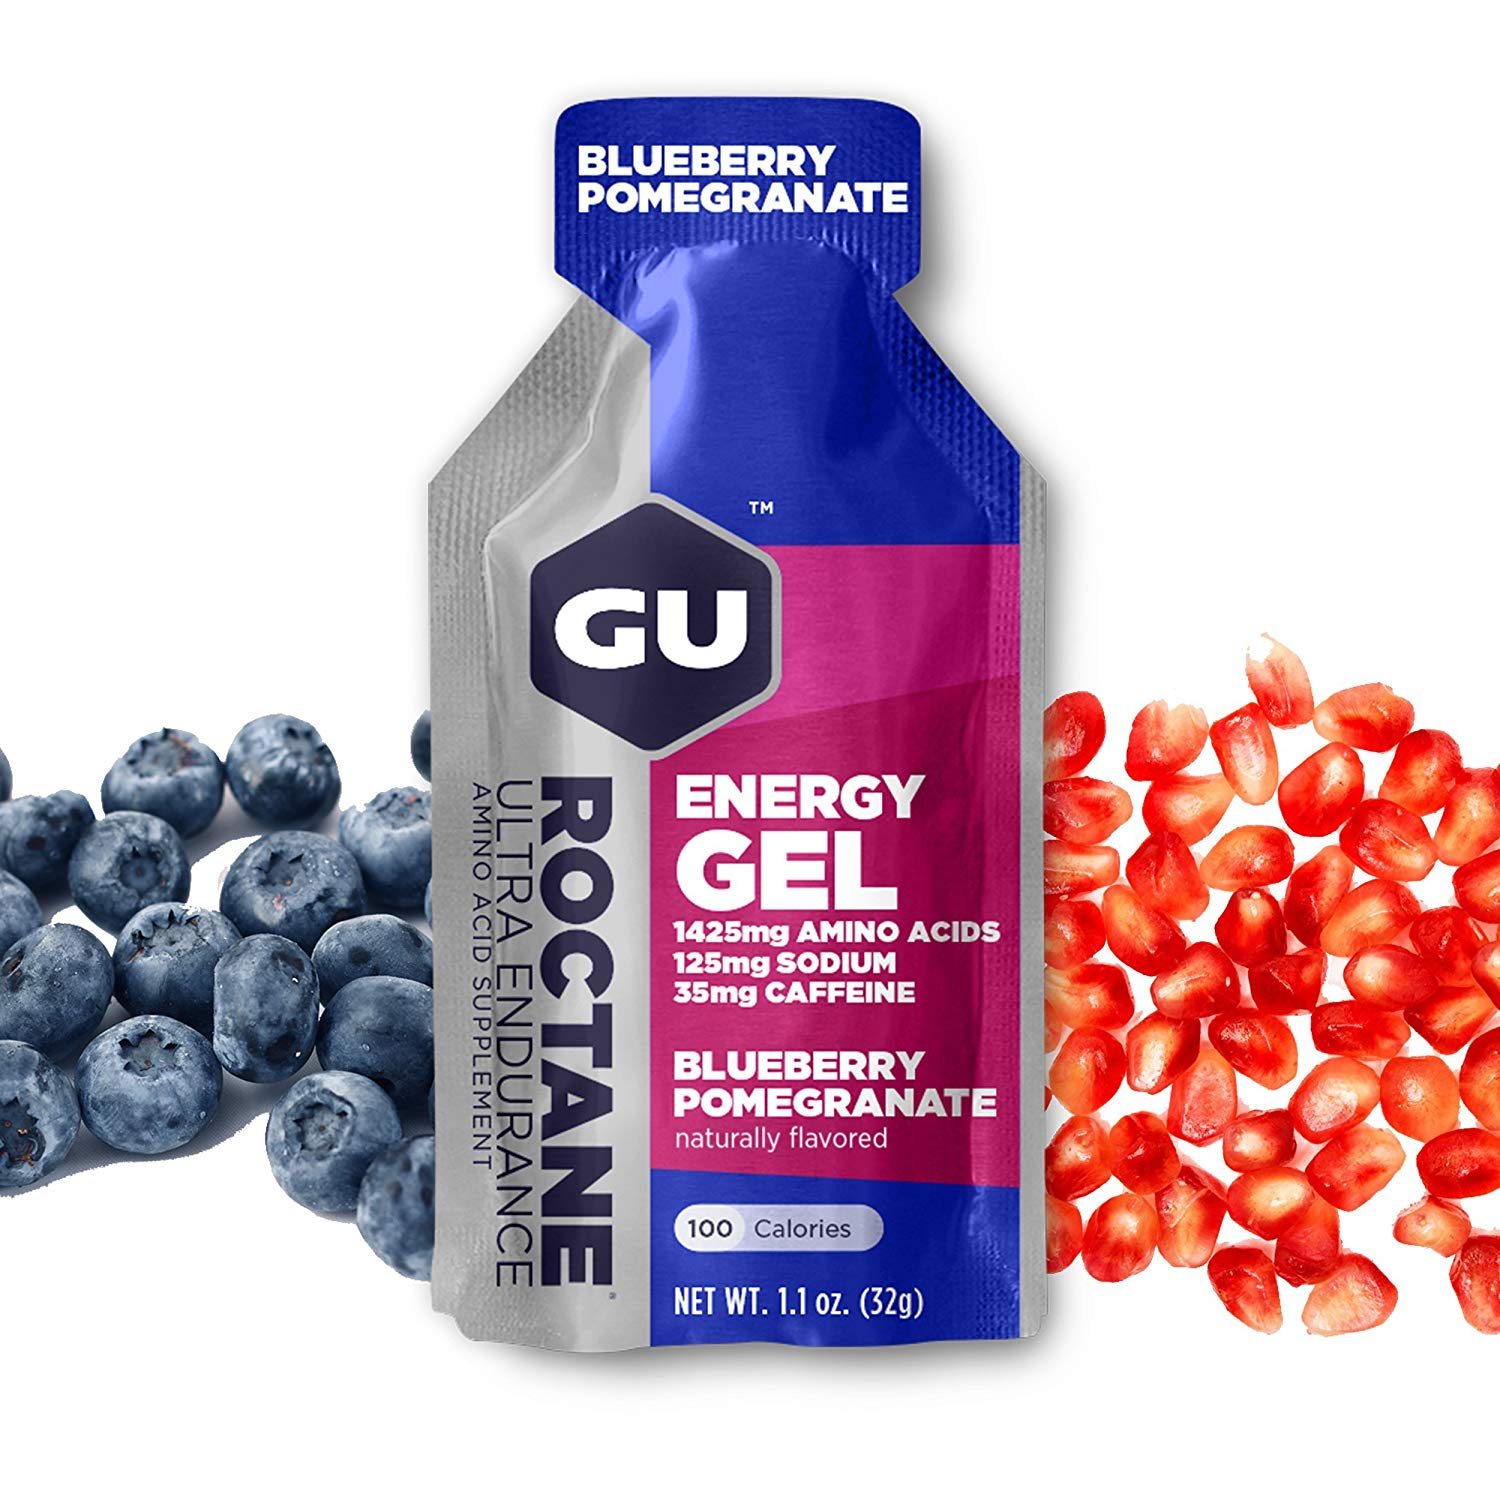 GU Energy Roctane Gel blueberry pomegranate